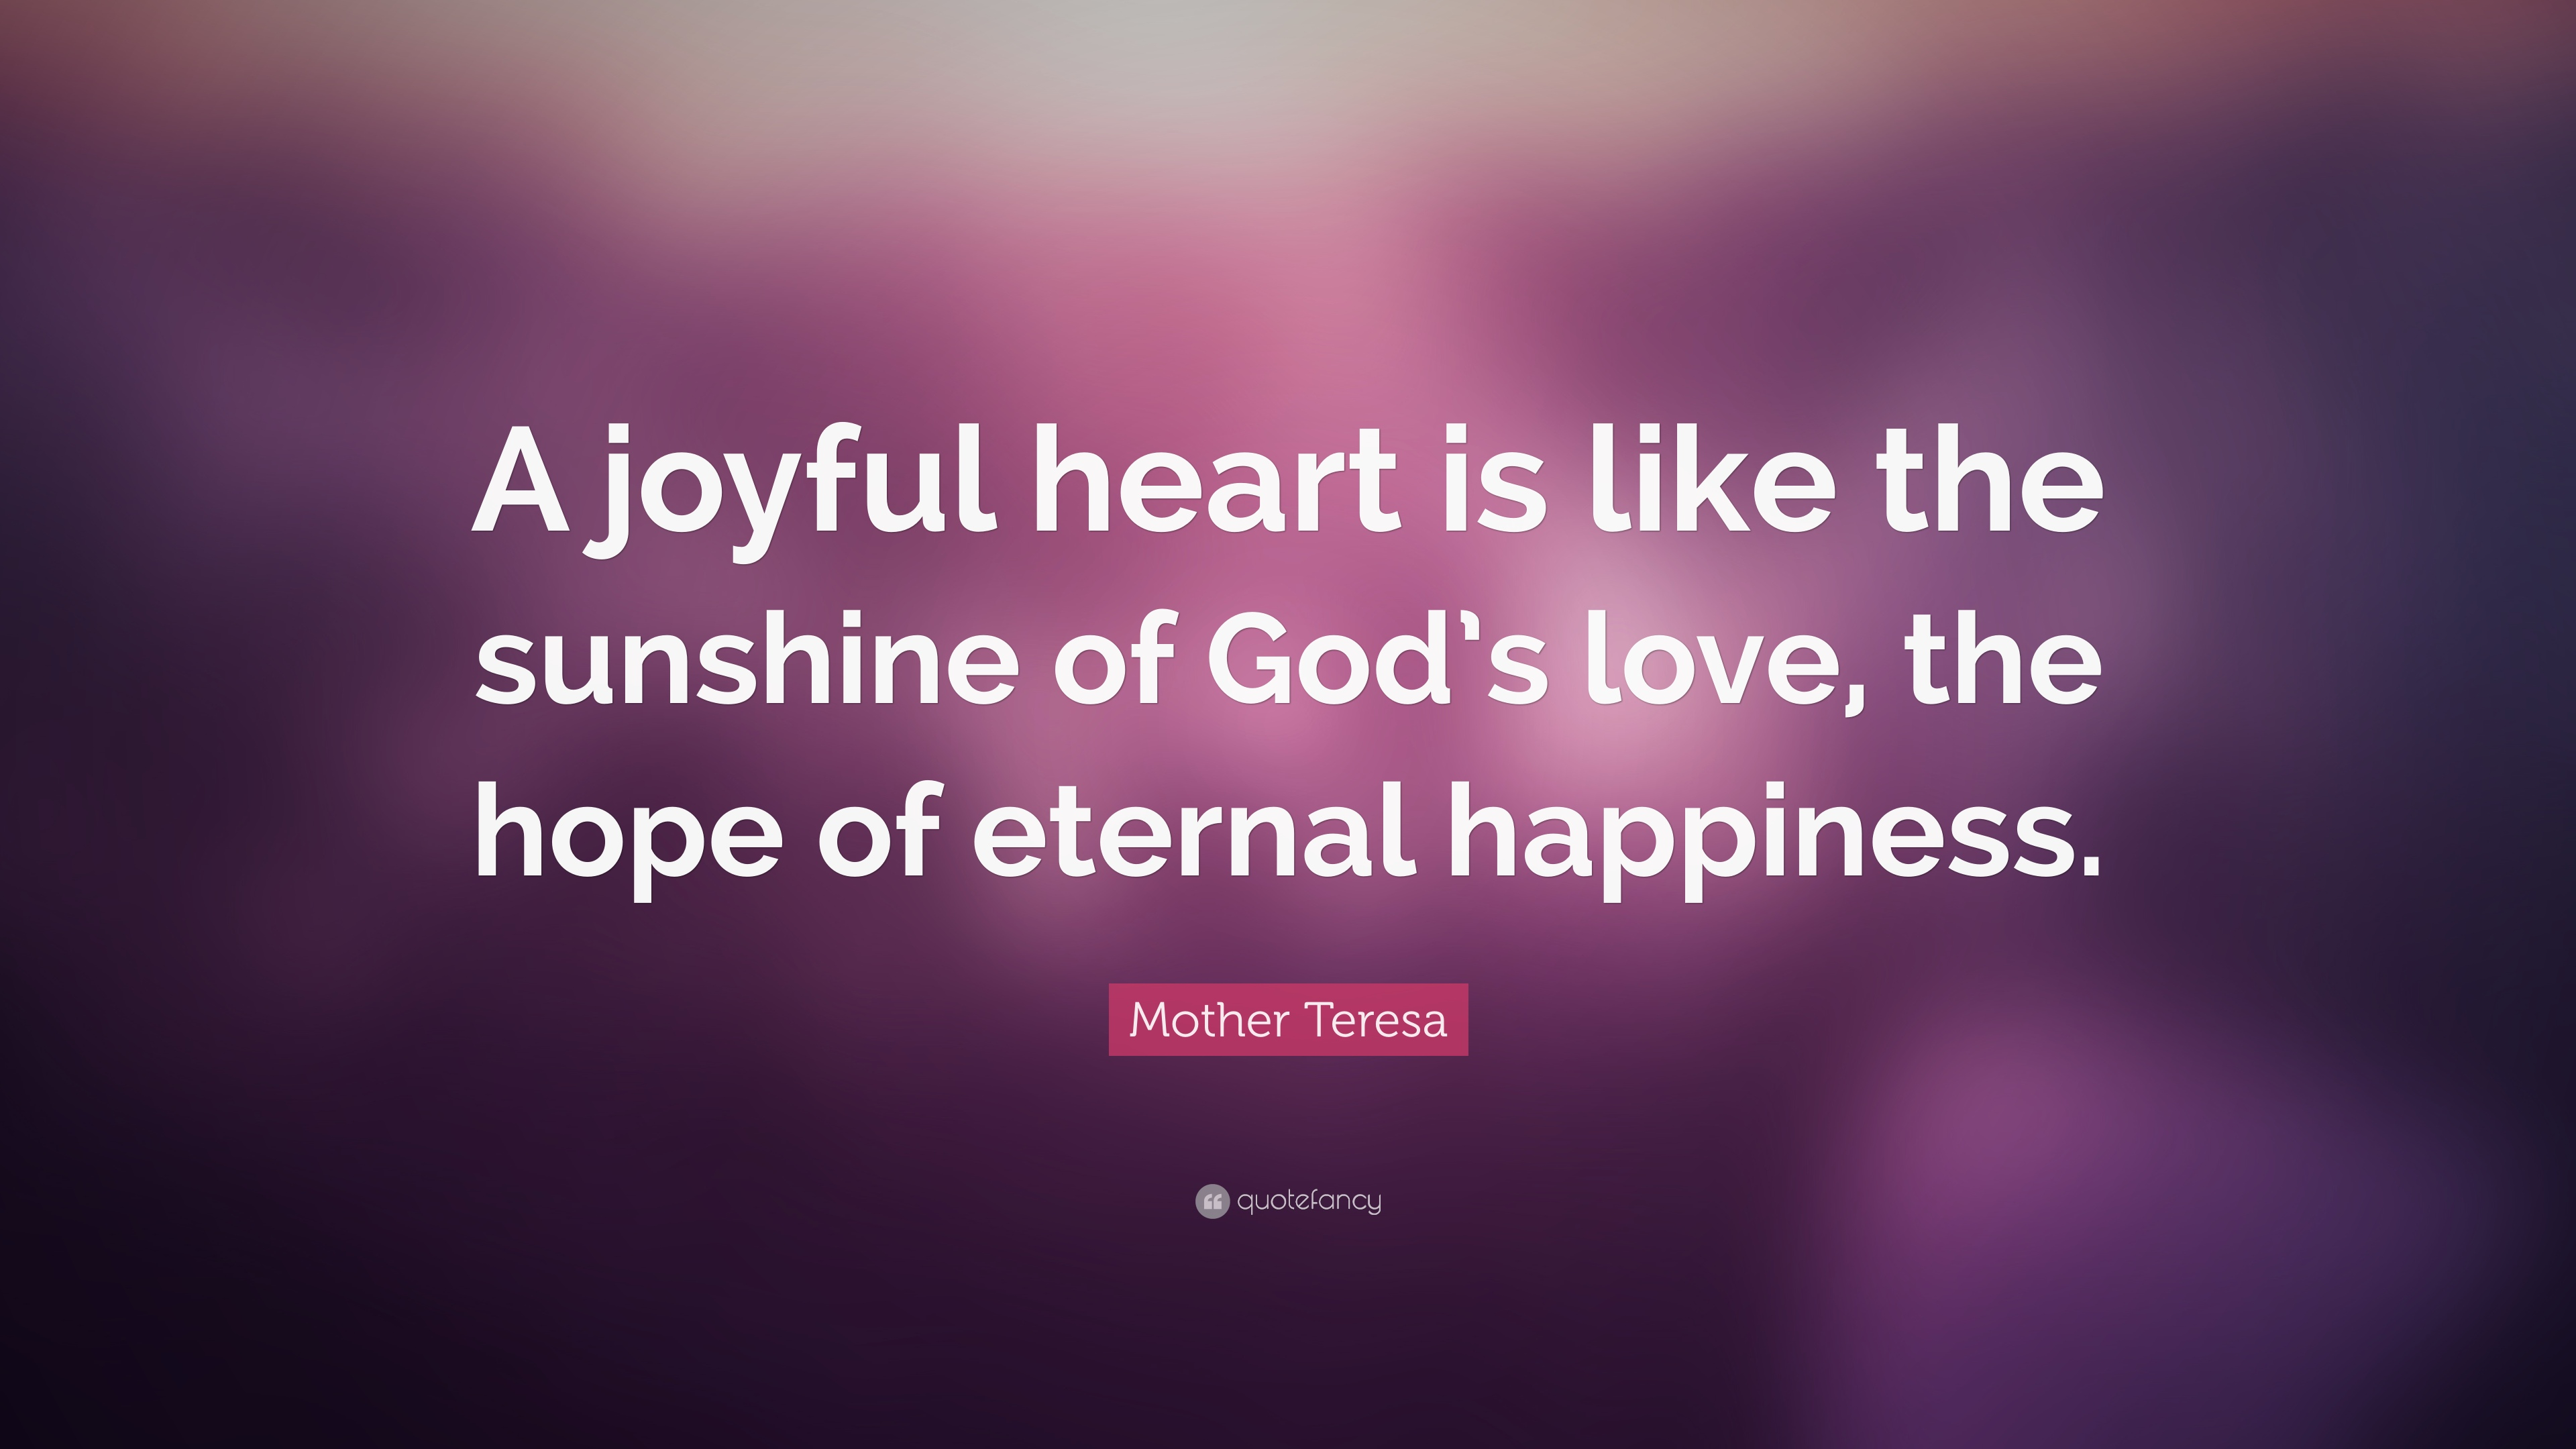 Inspirational Quotes About Eternal Love And Happiness Love Quotes Collection Within Hd Images